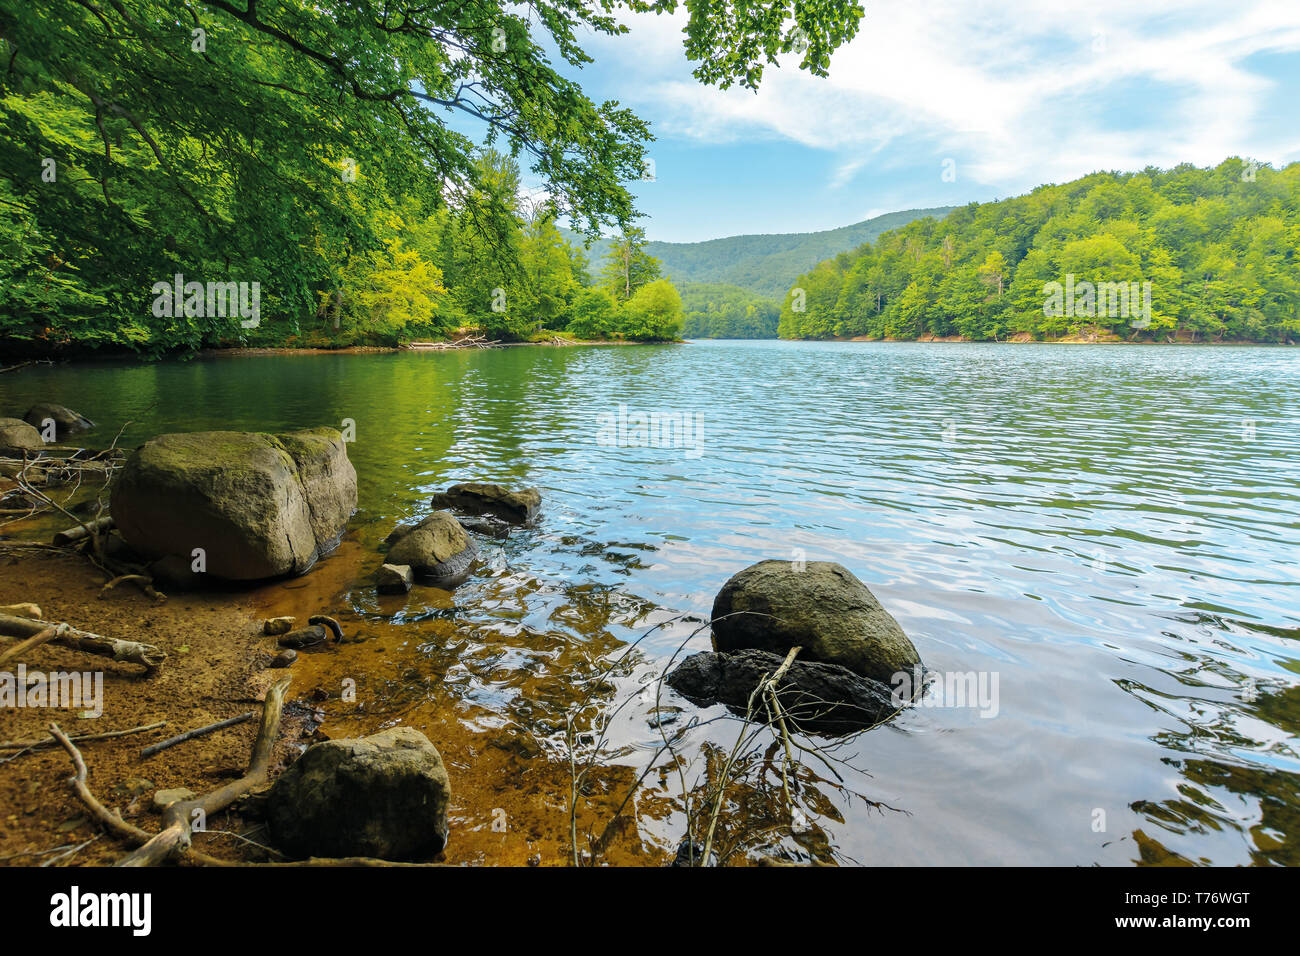 beautiful summer scenery near the mountain lake. beech forest and rocks on the shore. sunny weather and crystal clear water - Stock Image